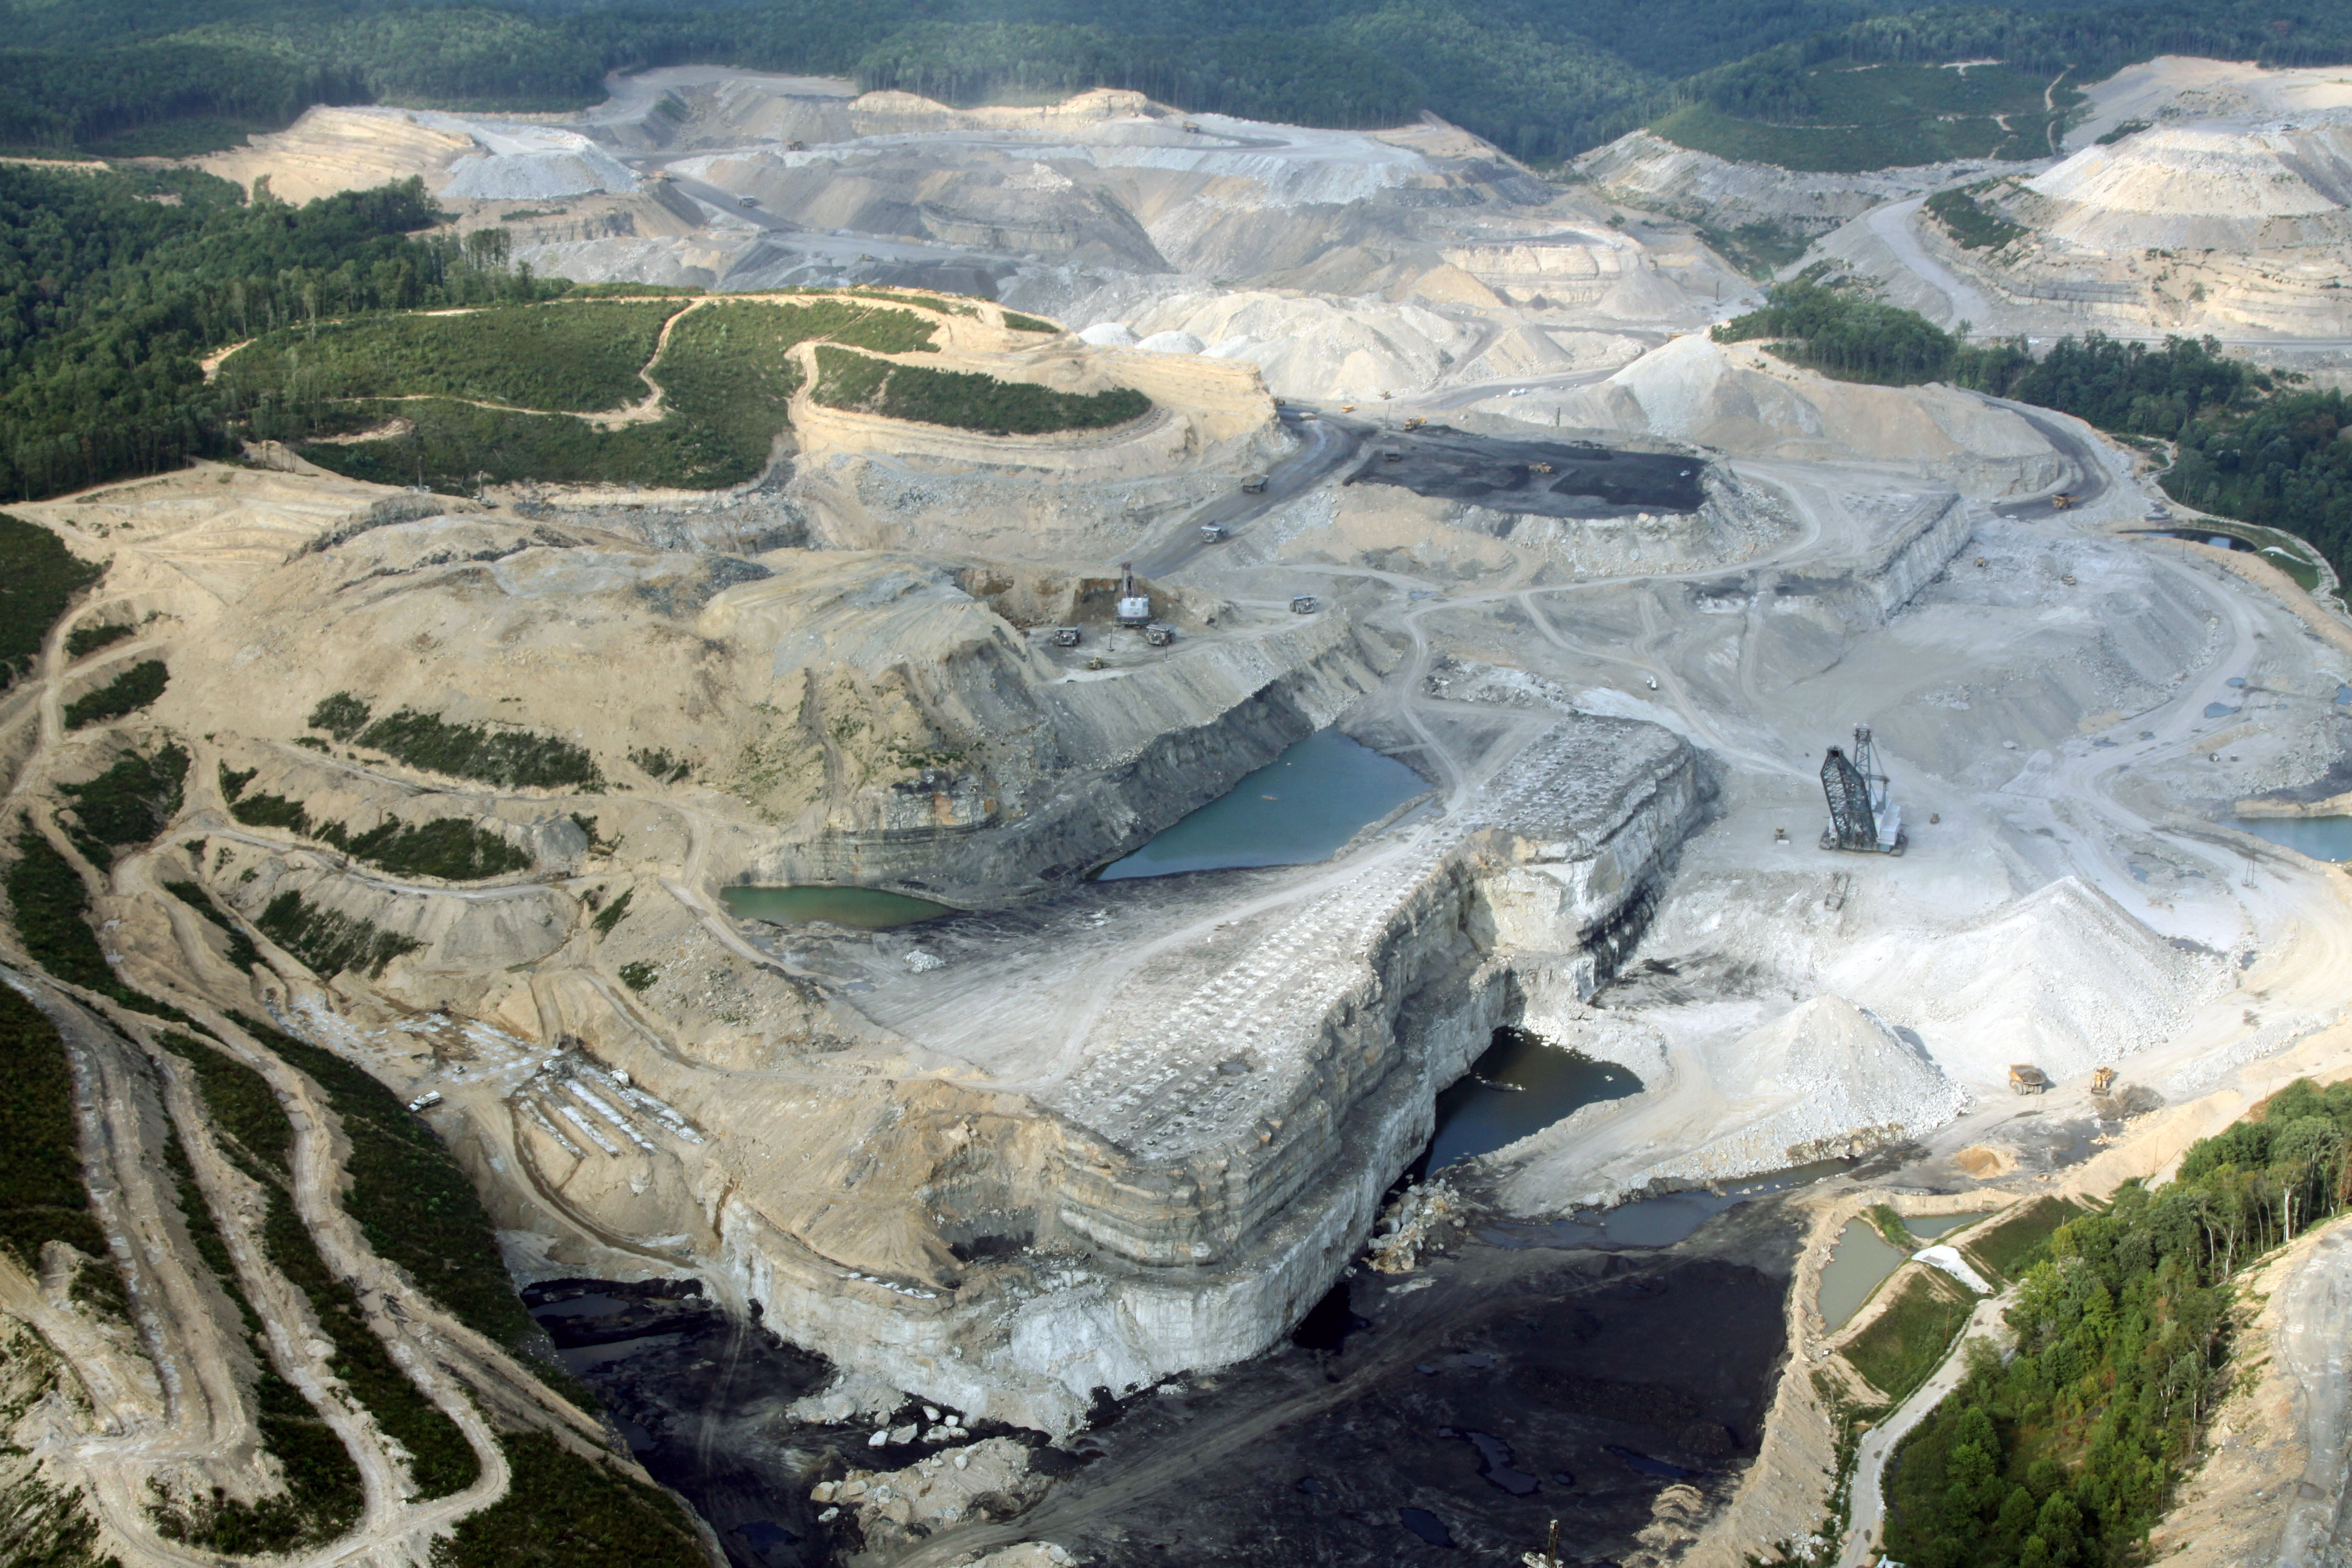 Mountain top removal dans une mine de charbon des Appalaches. Source: Duke University